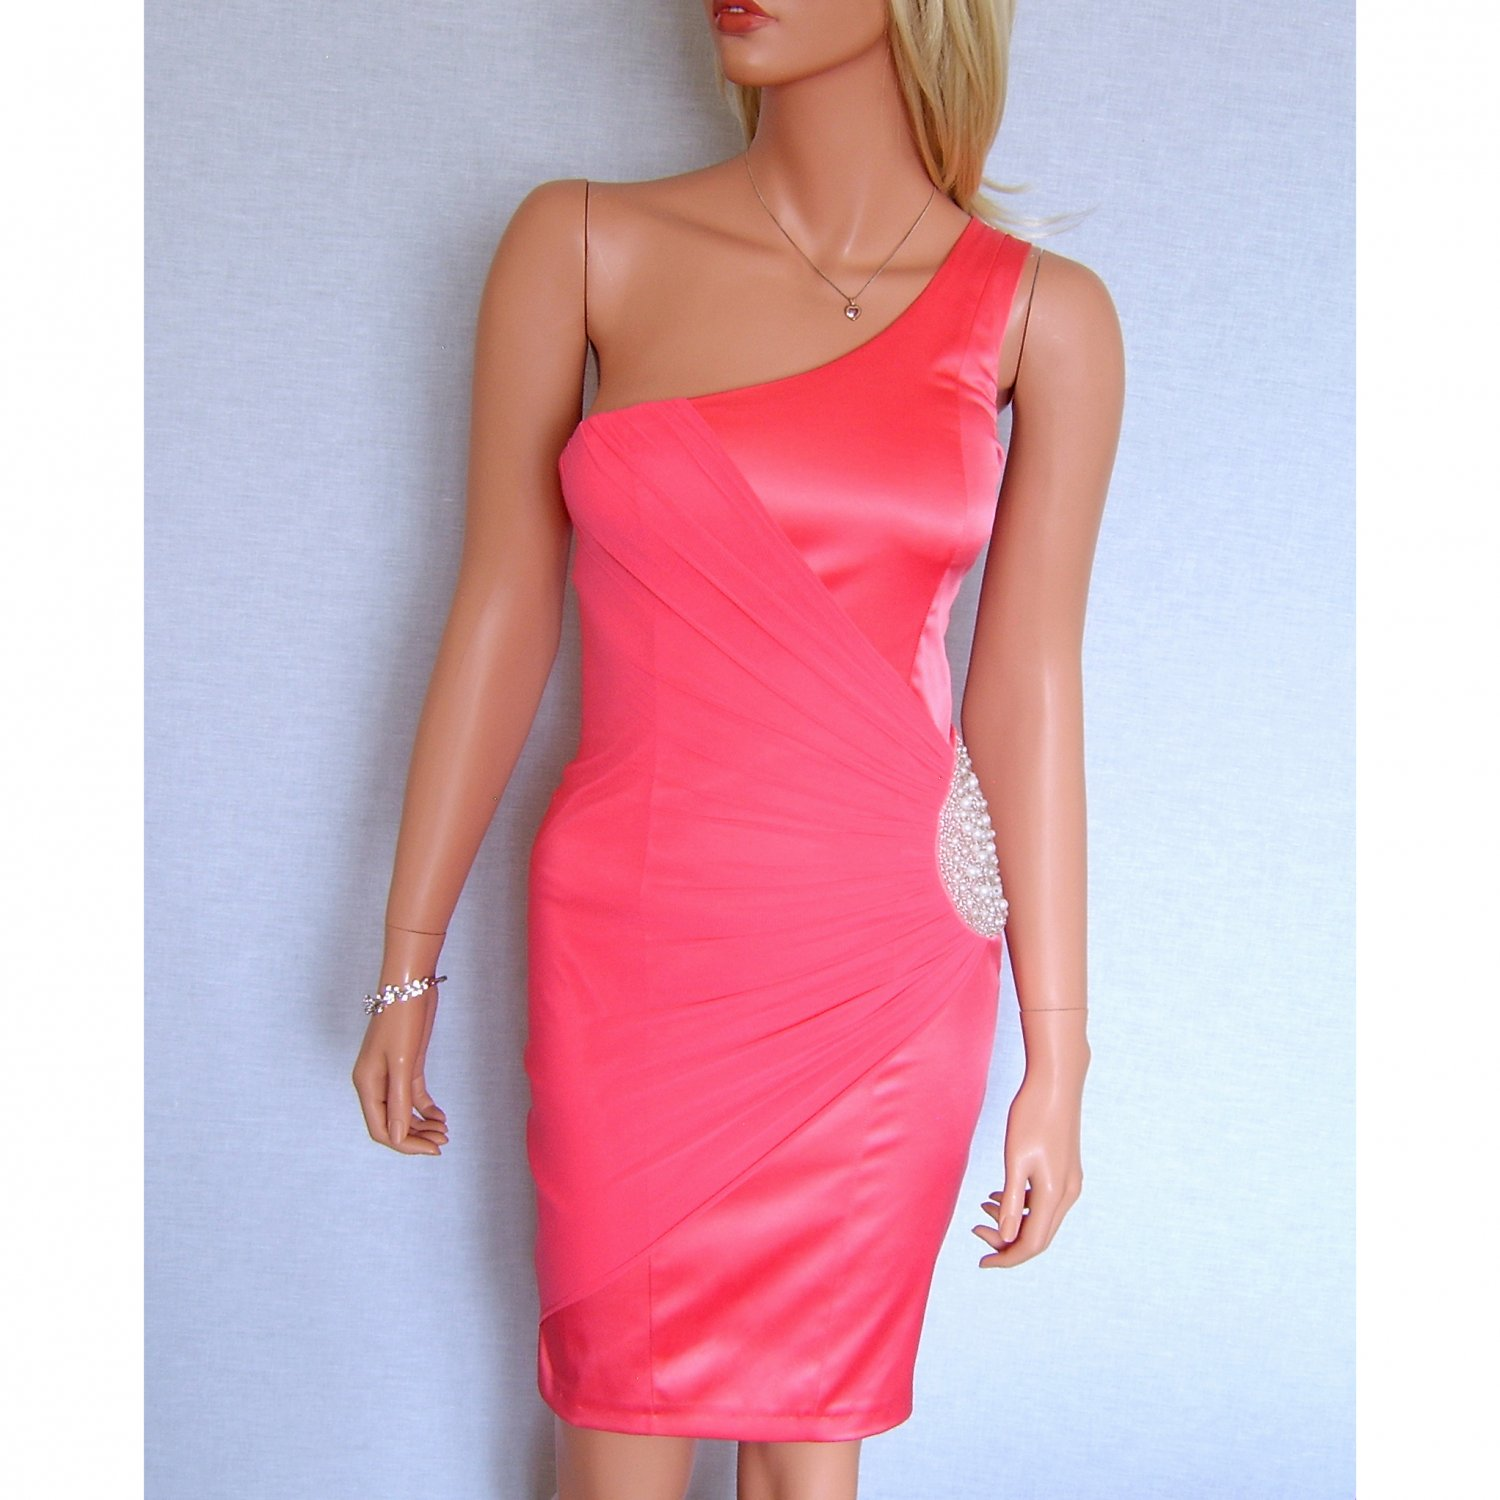 ELISE RYAN TOPSHOP CORAL BEADED EVENING BODYCON MINI COCKTAIL CLUB PARTY PROM DRESS UK 10, US 6